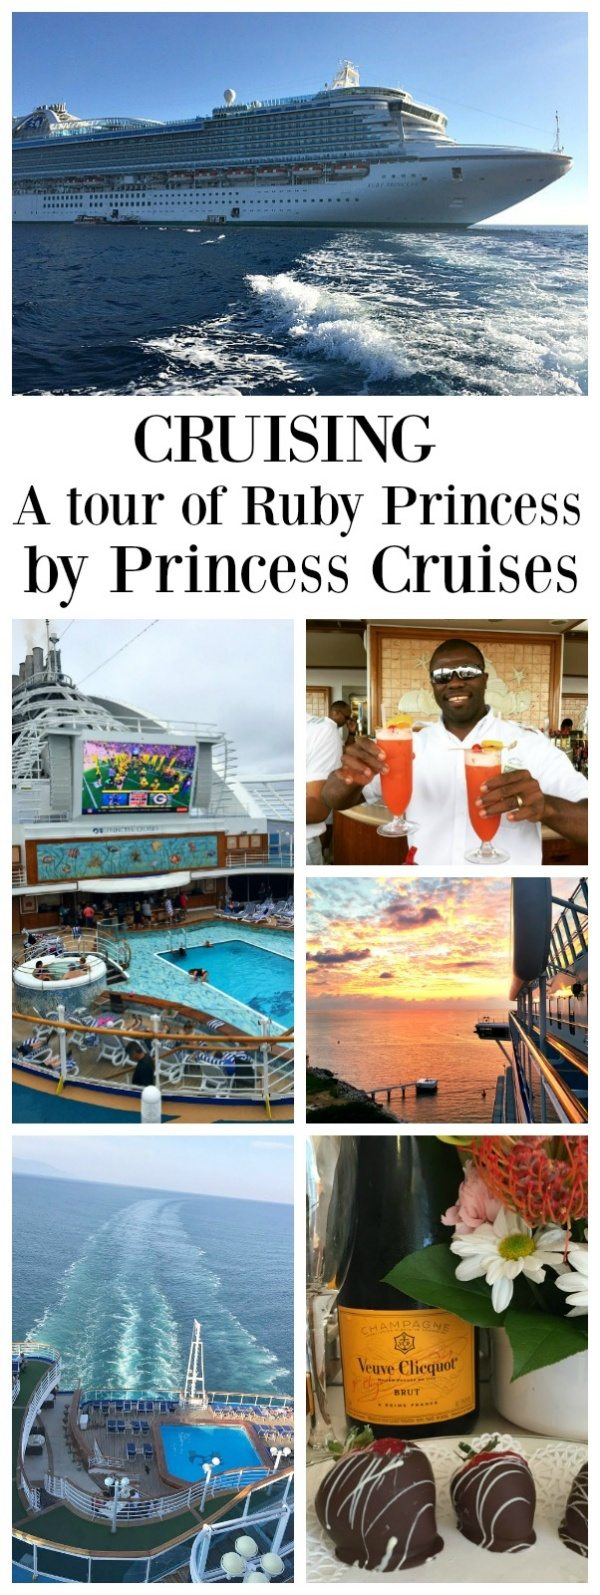 Tour of The Ruby Princess from Princess Cruises - a peek at the staterooms and a tour of the rest of the ship.